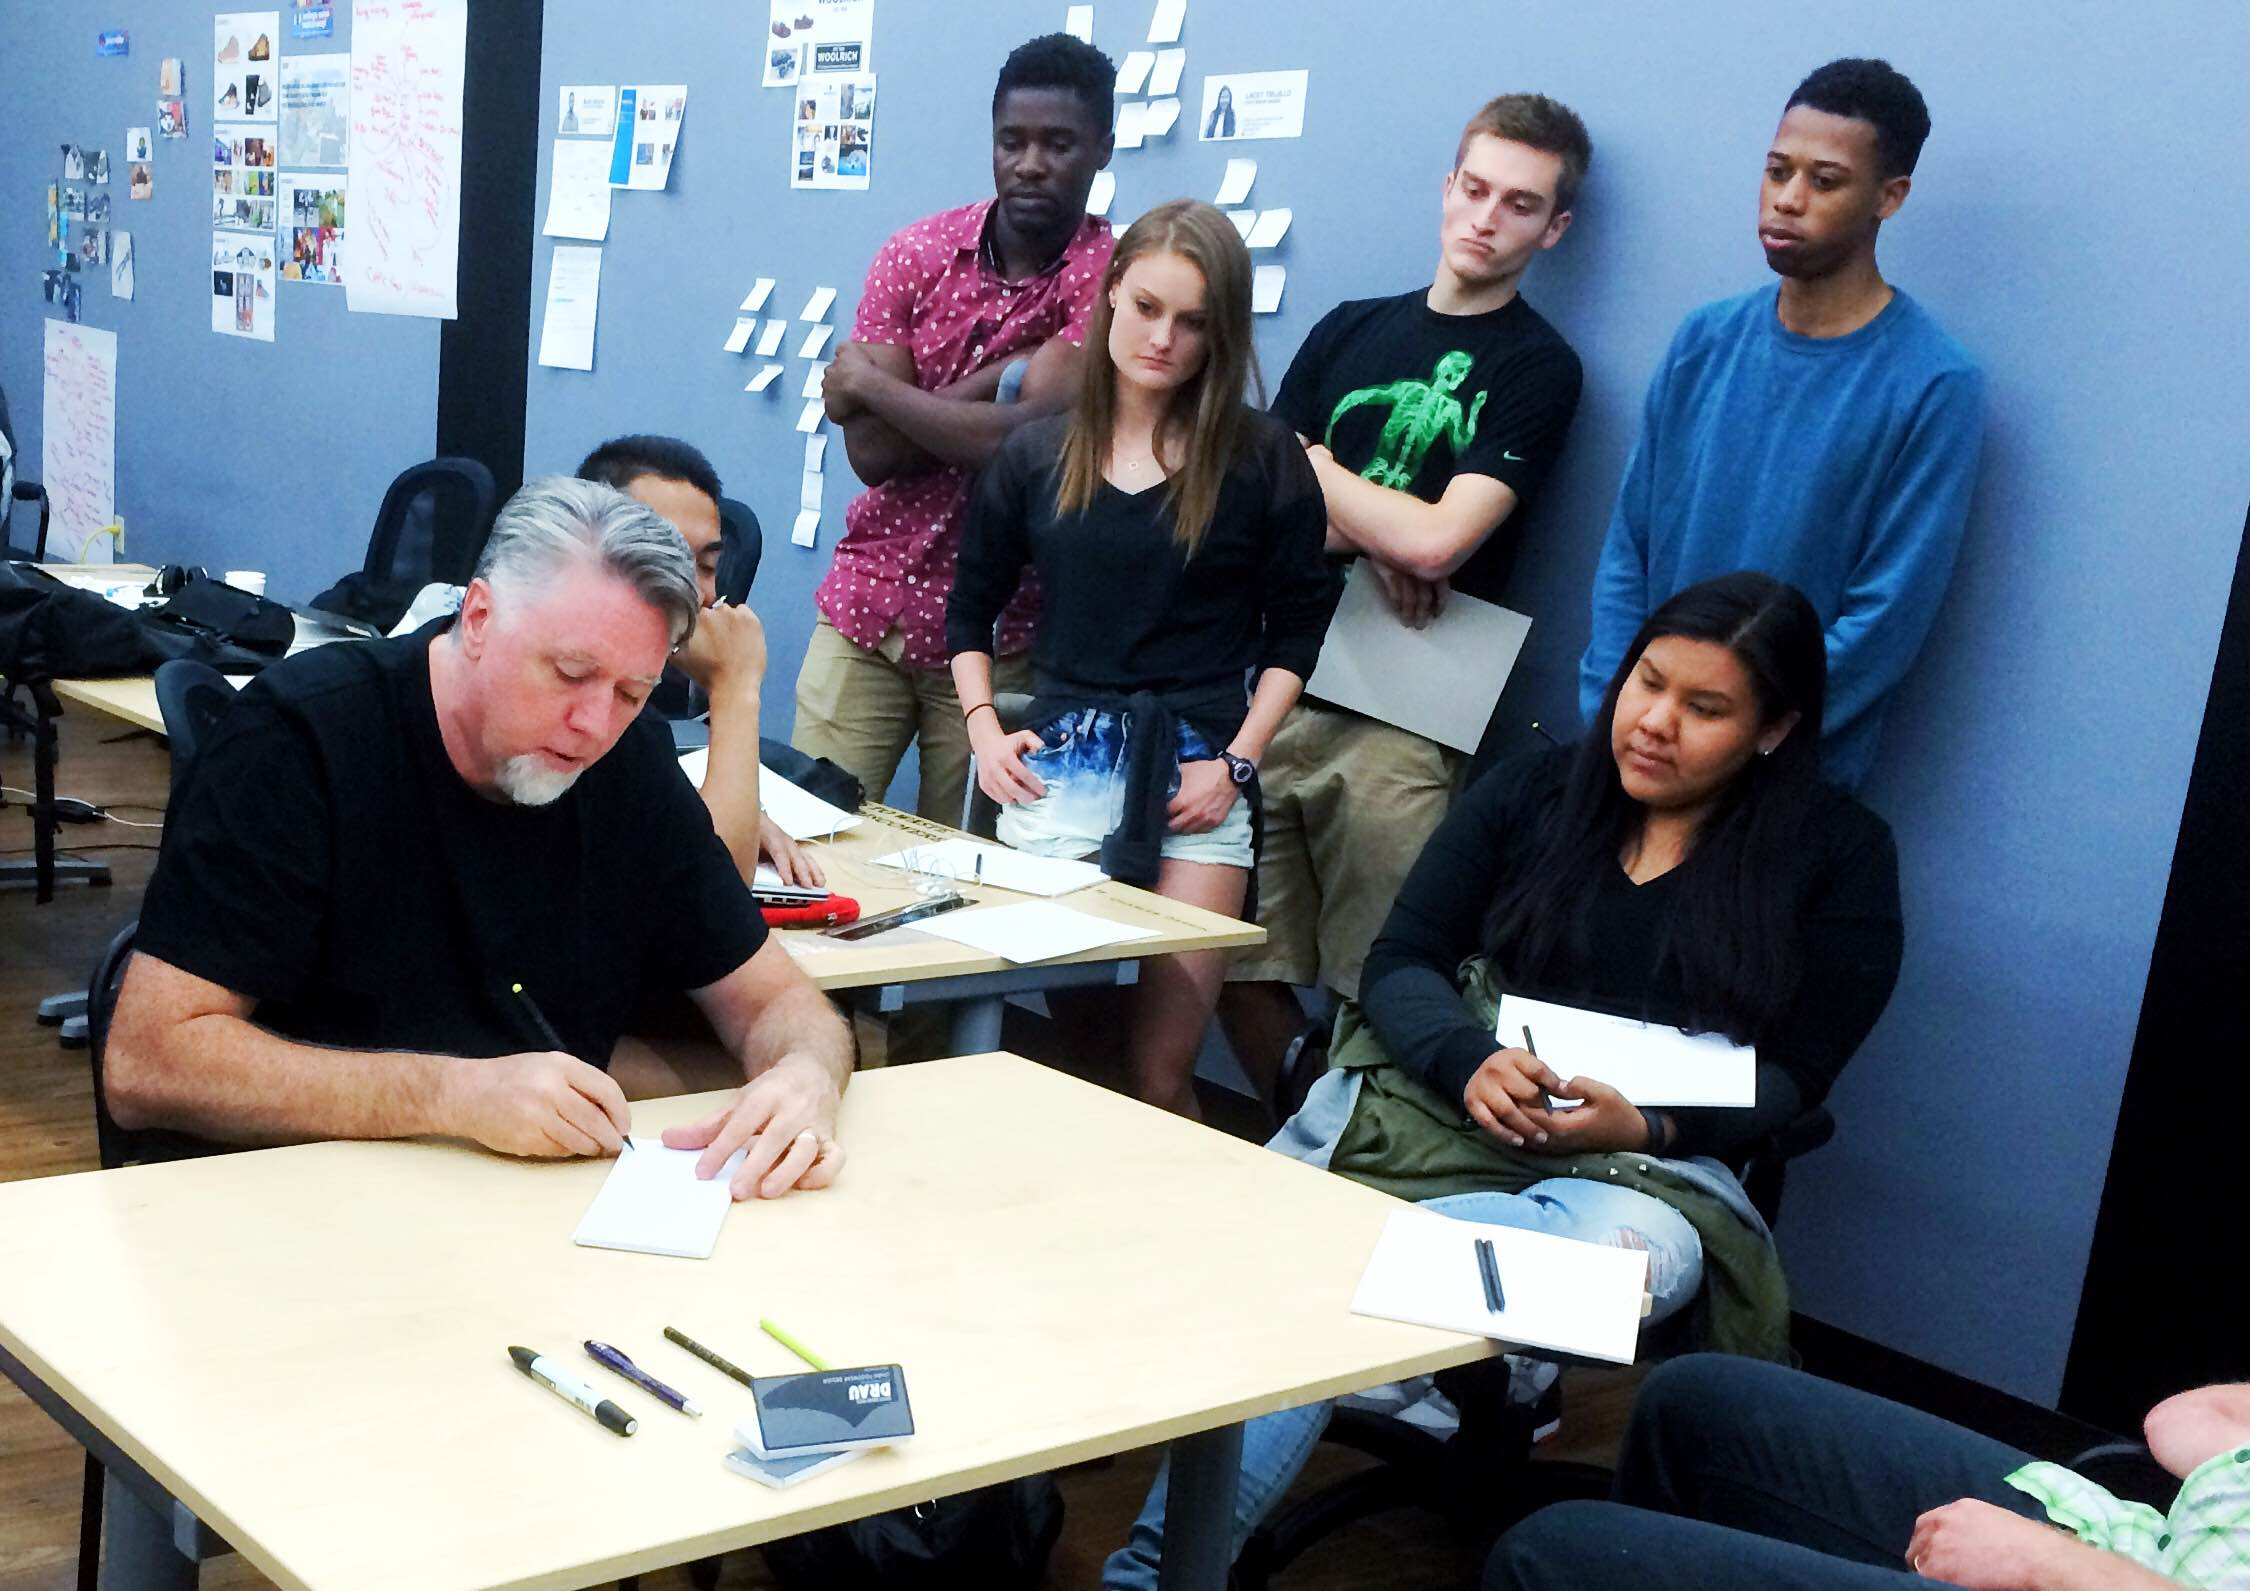 Matt stopped by to chat with the Brand Designers beforegiving a sketch demonstration.